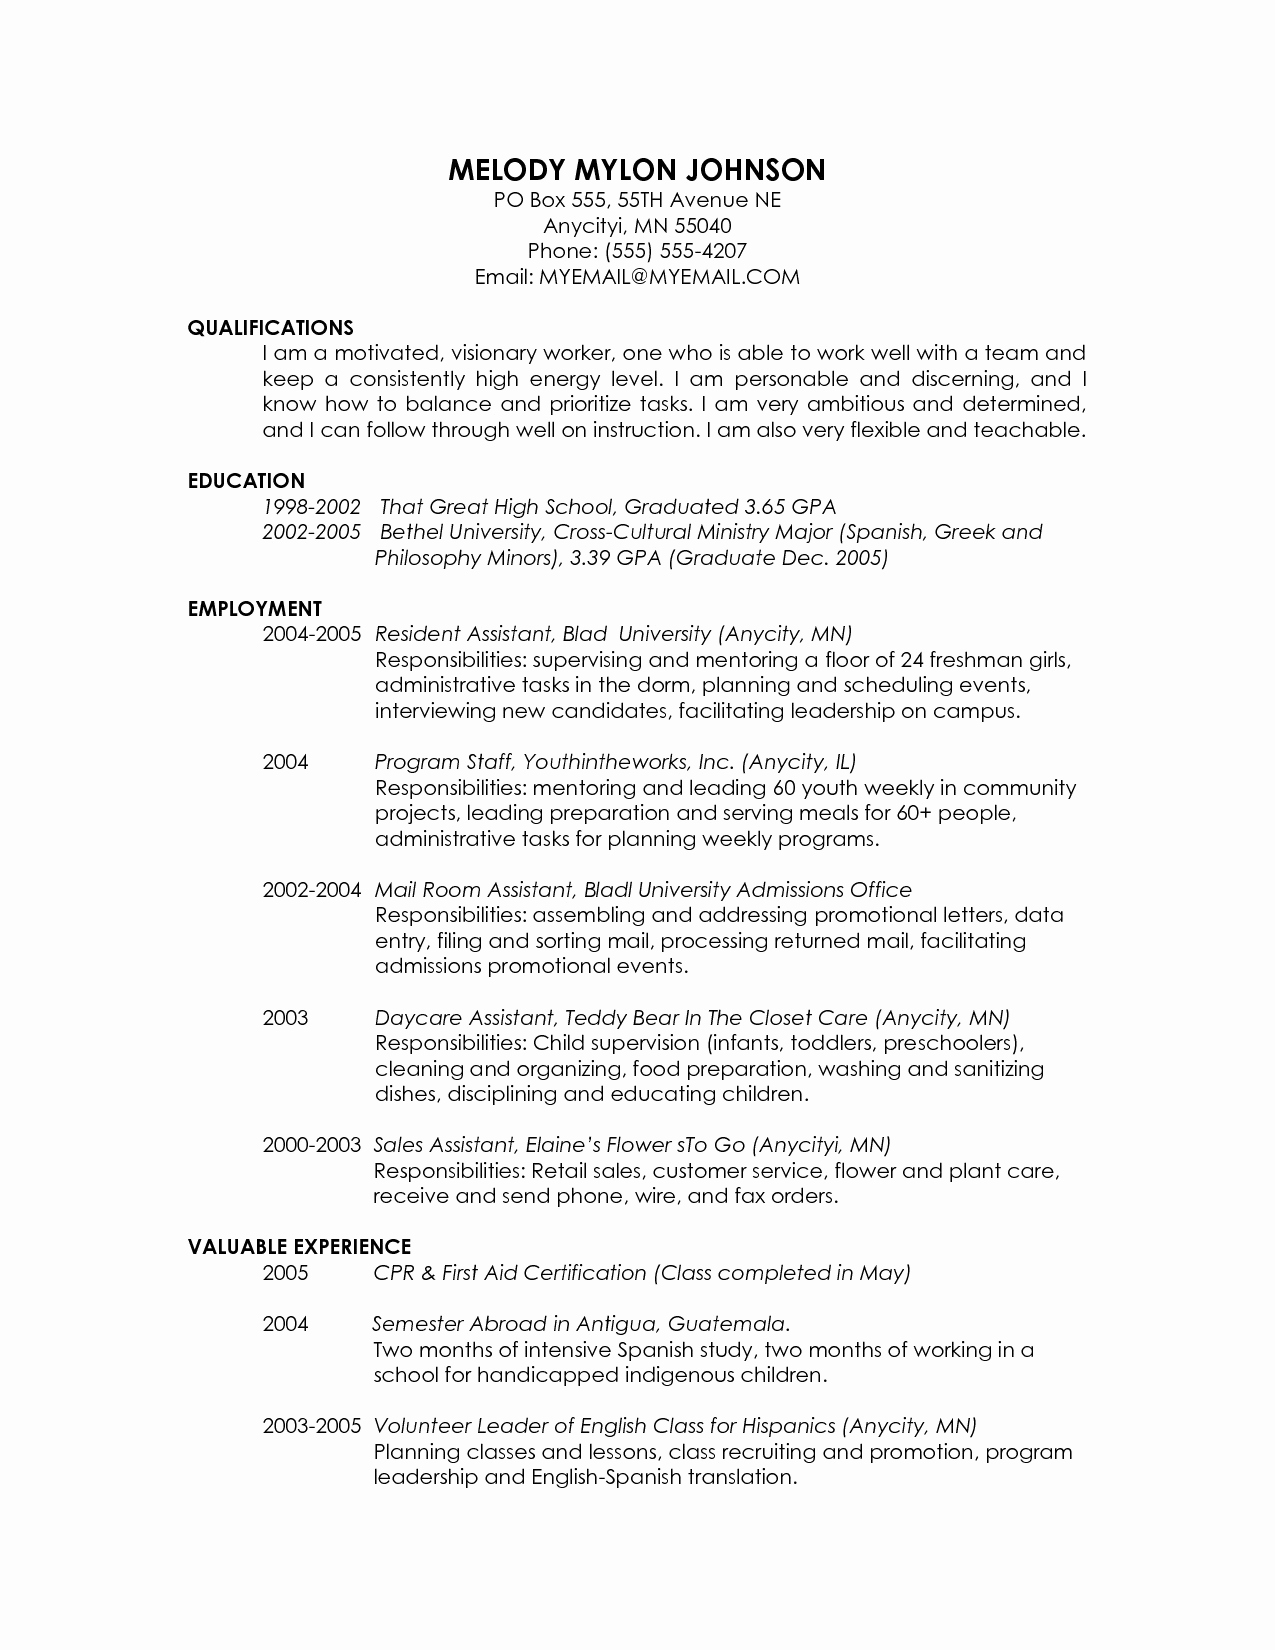 Grad School Resume - Graduate School Resume Template Lovely Grad School Resume Template